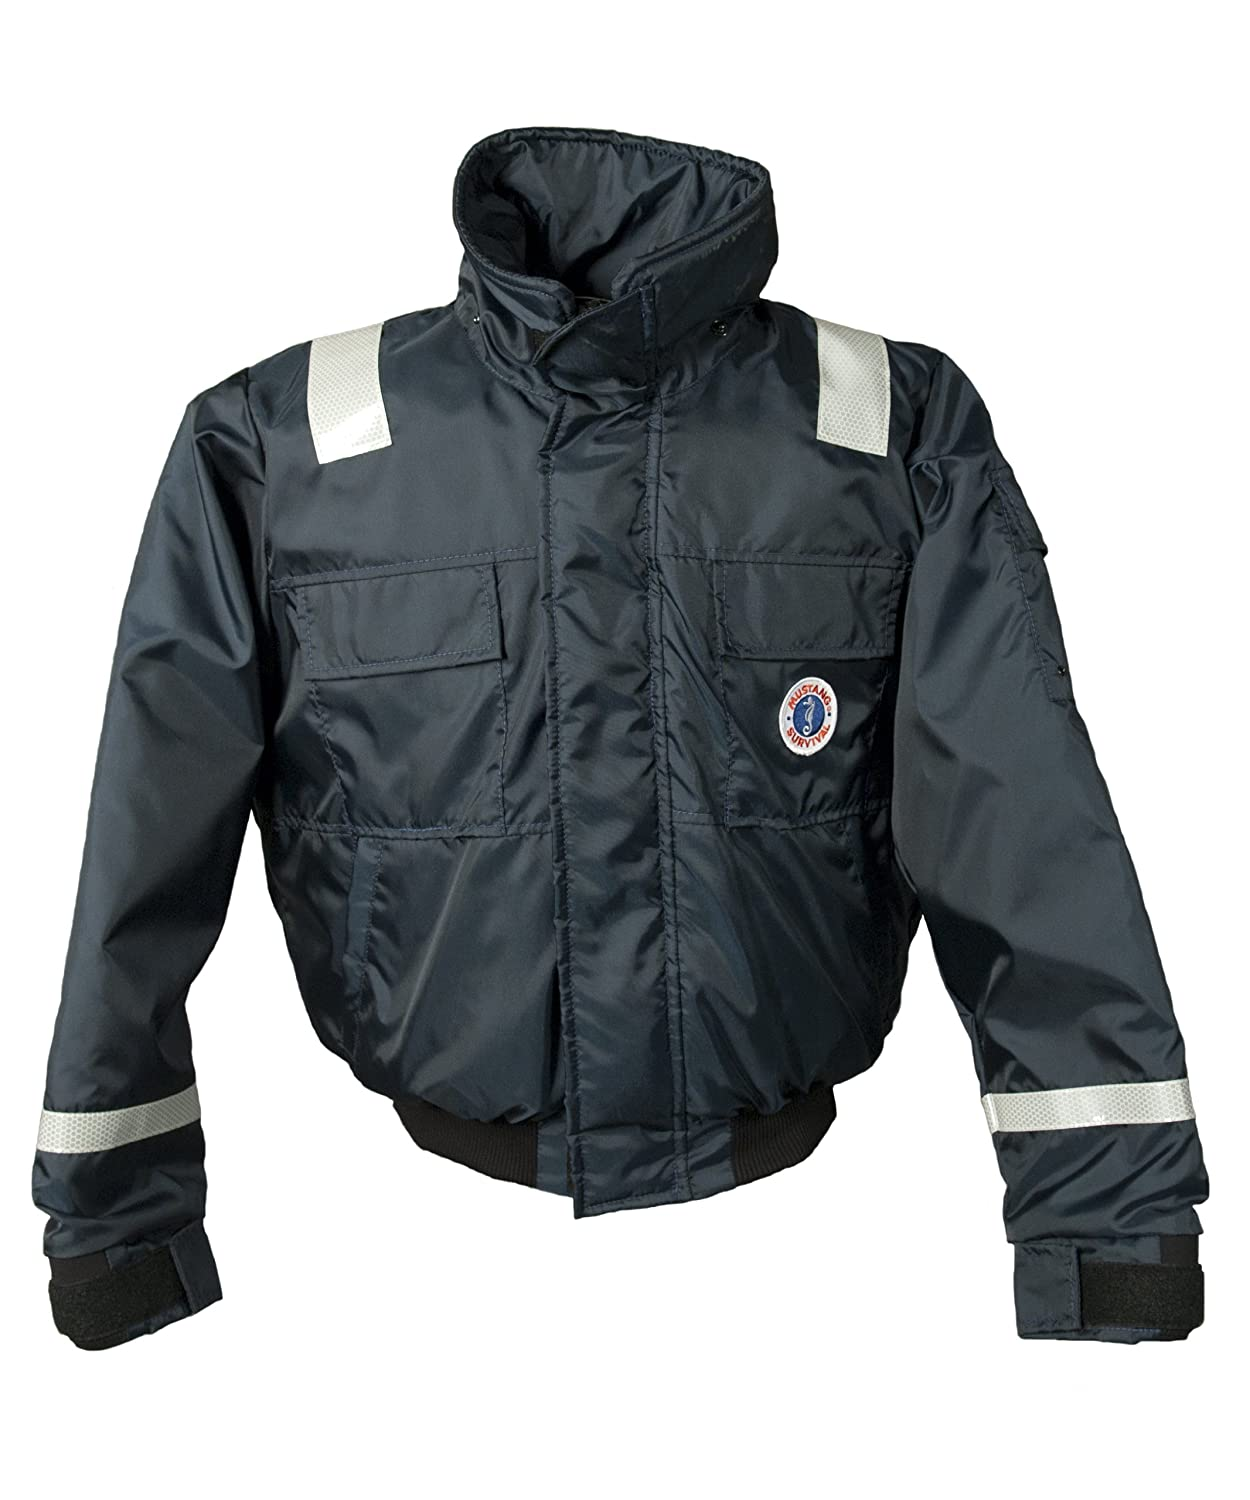 Mustang Survival Classic Bomber Jacket